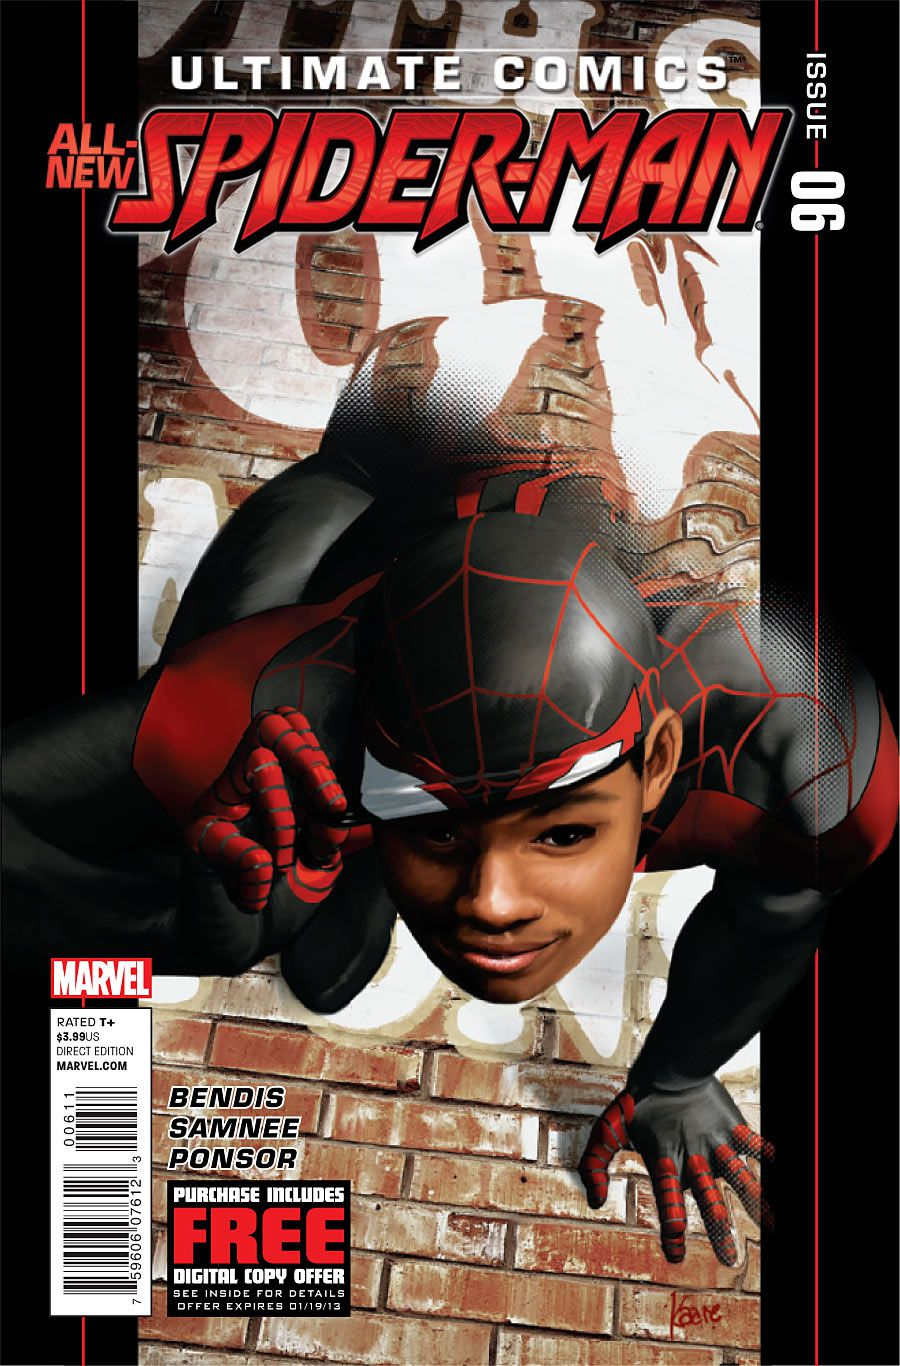 The cover of Ultimate Comics: Spider-Man